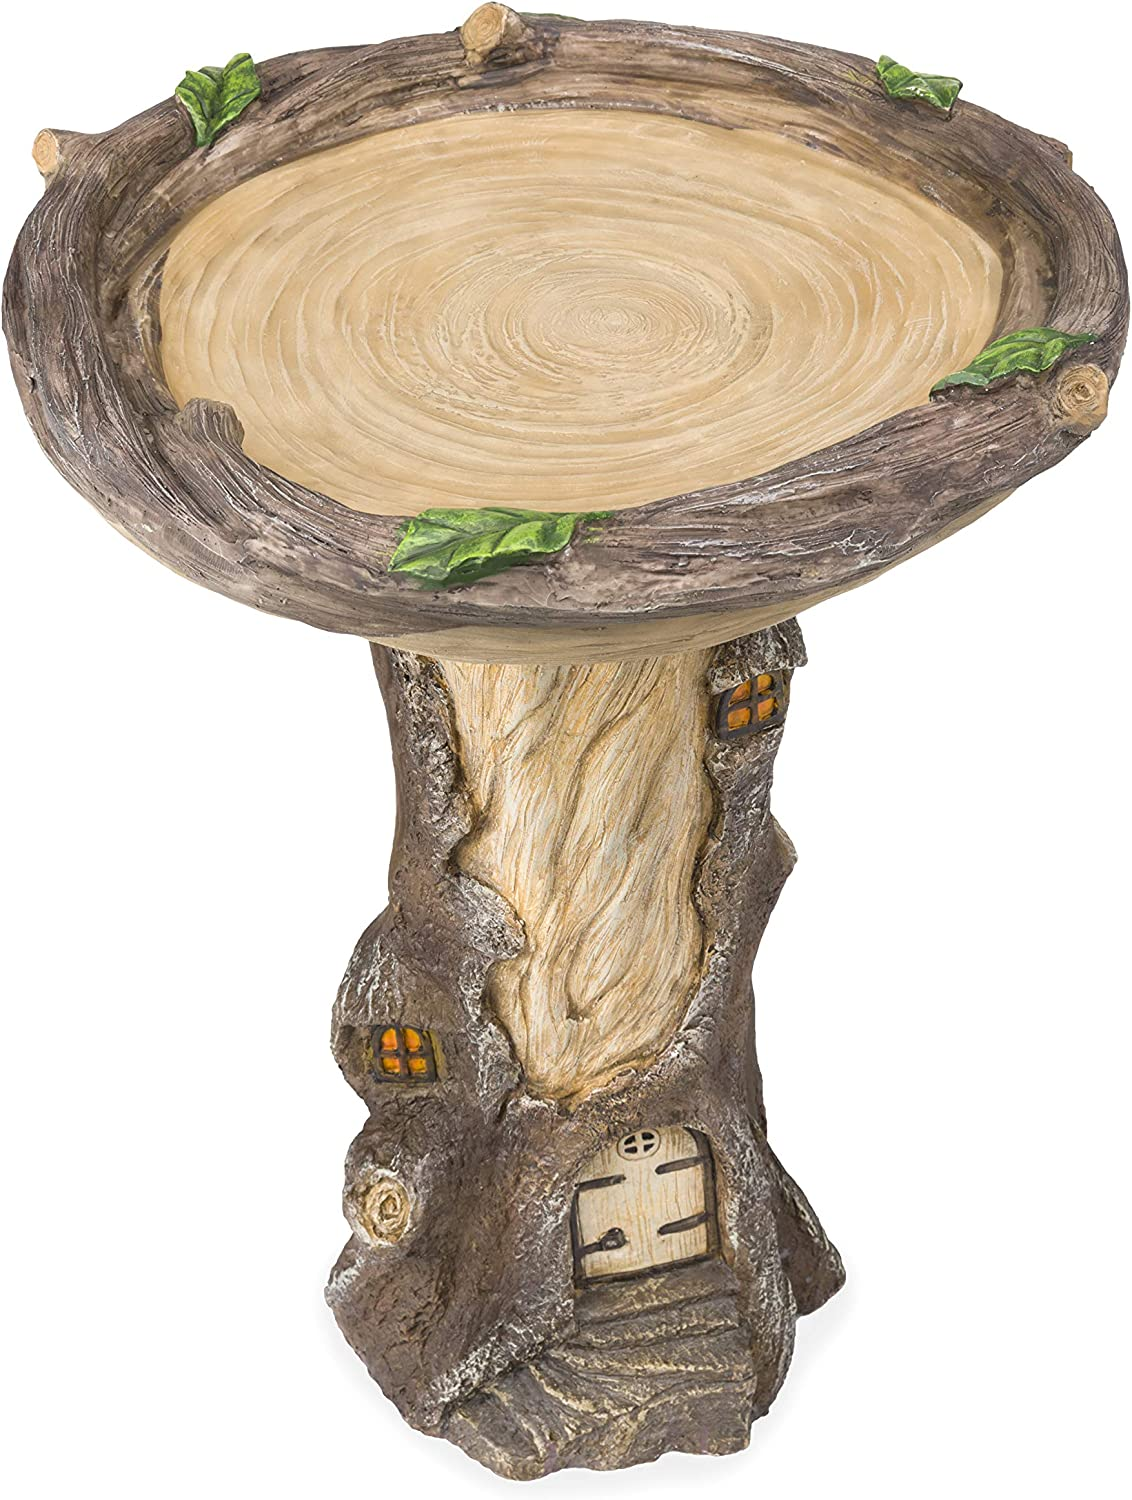 "Plow & Hearth Full-Size Fairy Garden Birdbath with Miniature Fairy House in A Tree Stump, Hand-Painted All-Weather Wood-Look Resin Landscape Accent, 18"" Dia. x 23½""H"